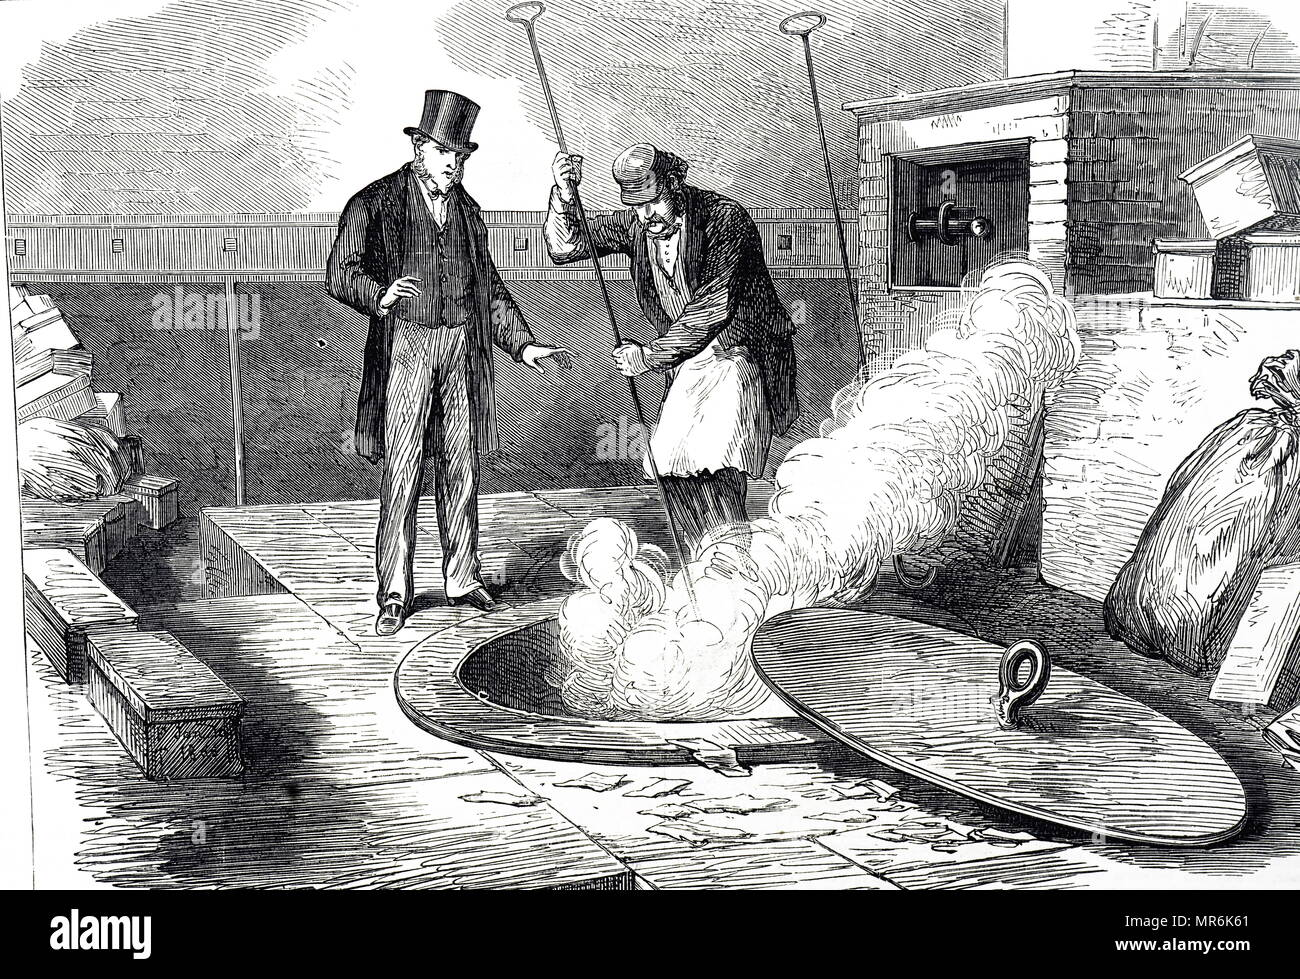 Engraving depicting the burning of returned bank notes unfit for re-issue. Dated 19th century - Stock Image